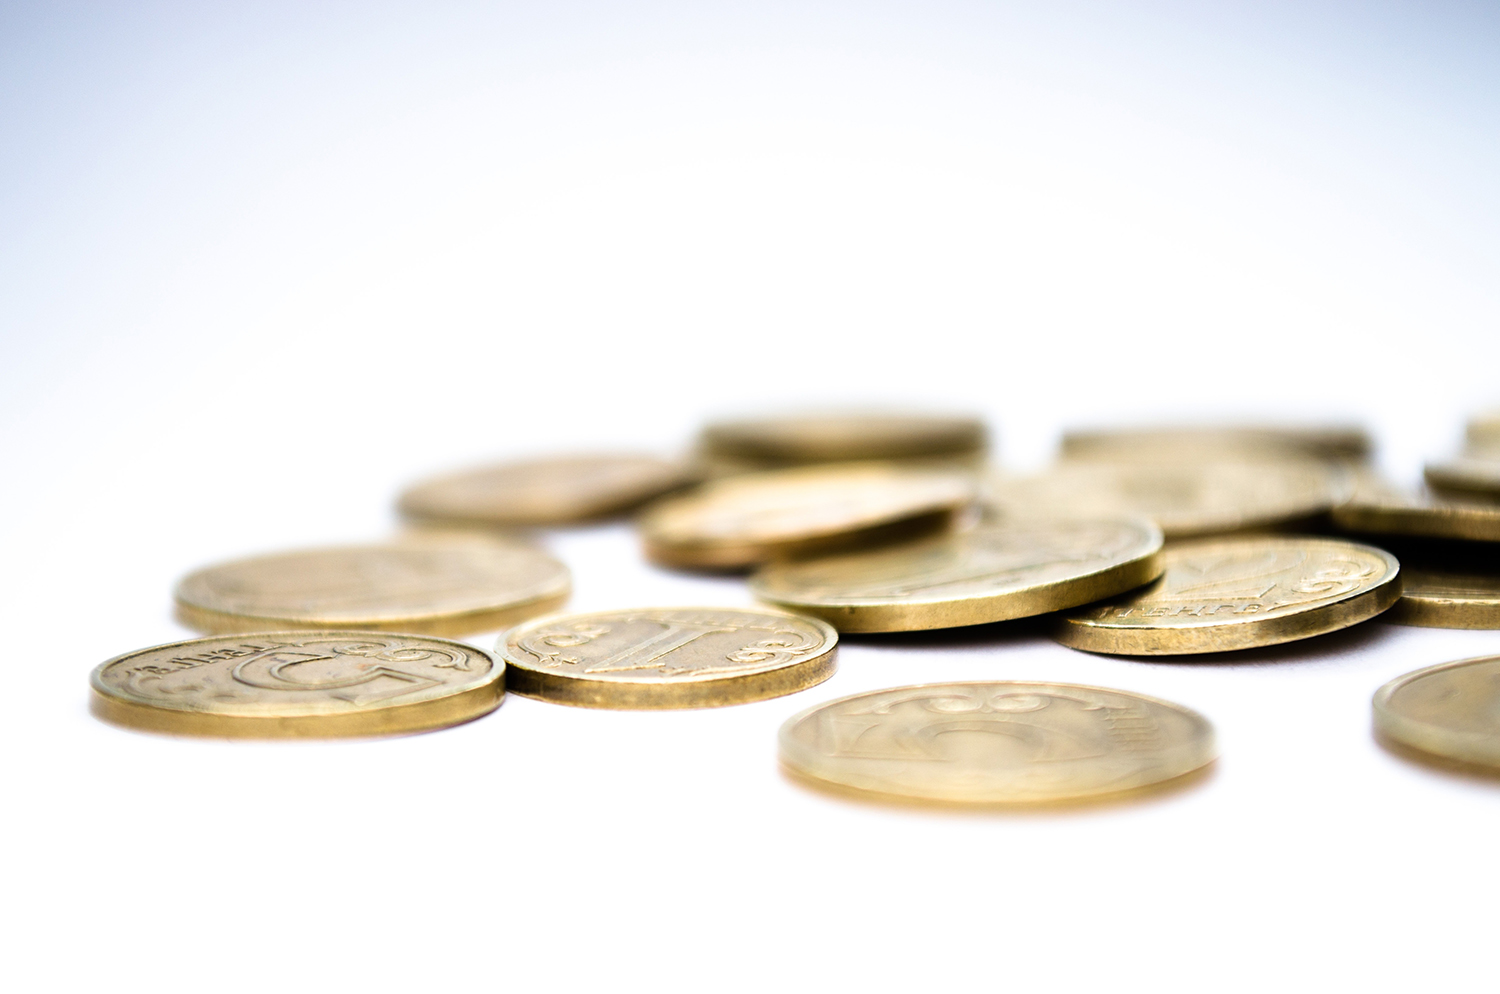 coins on white table - money management